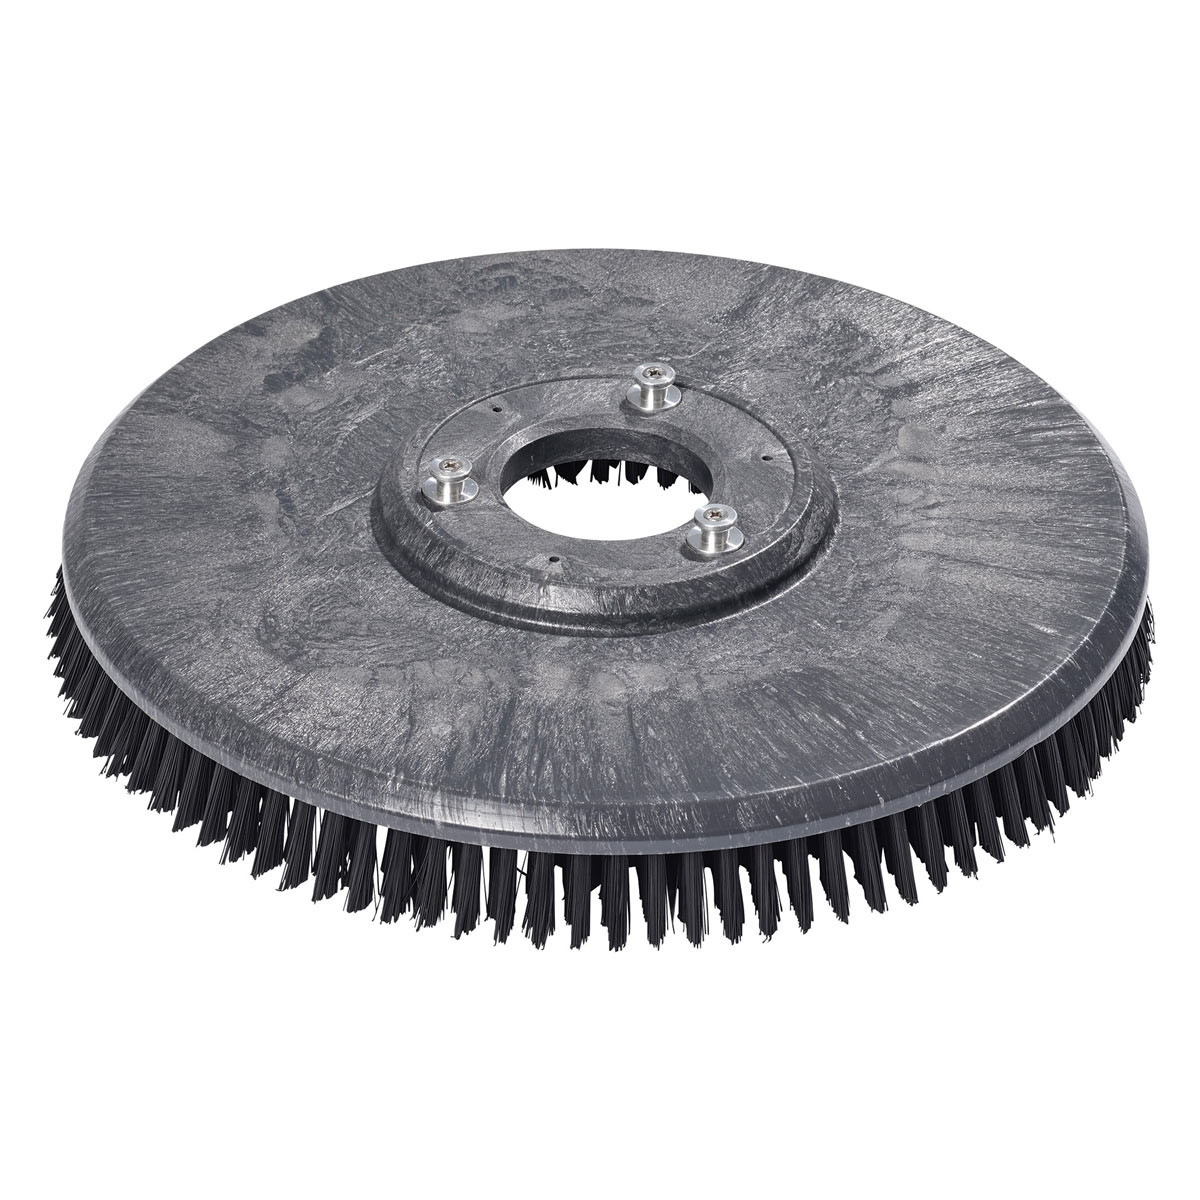 20 Quot Floor Scrubbing Brush Vf90417 For The Viper As510b